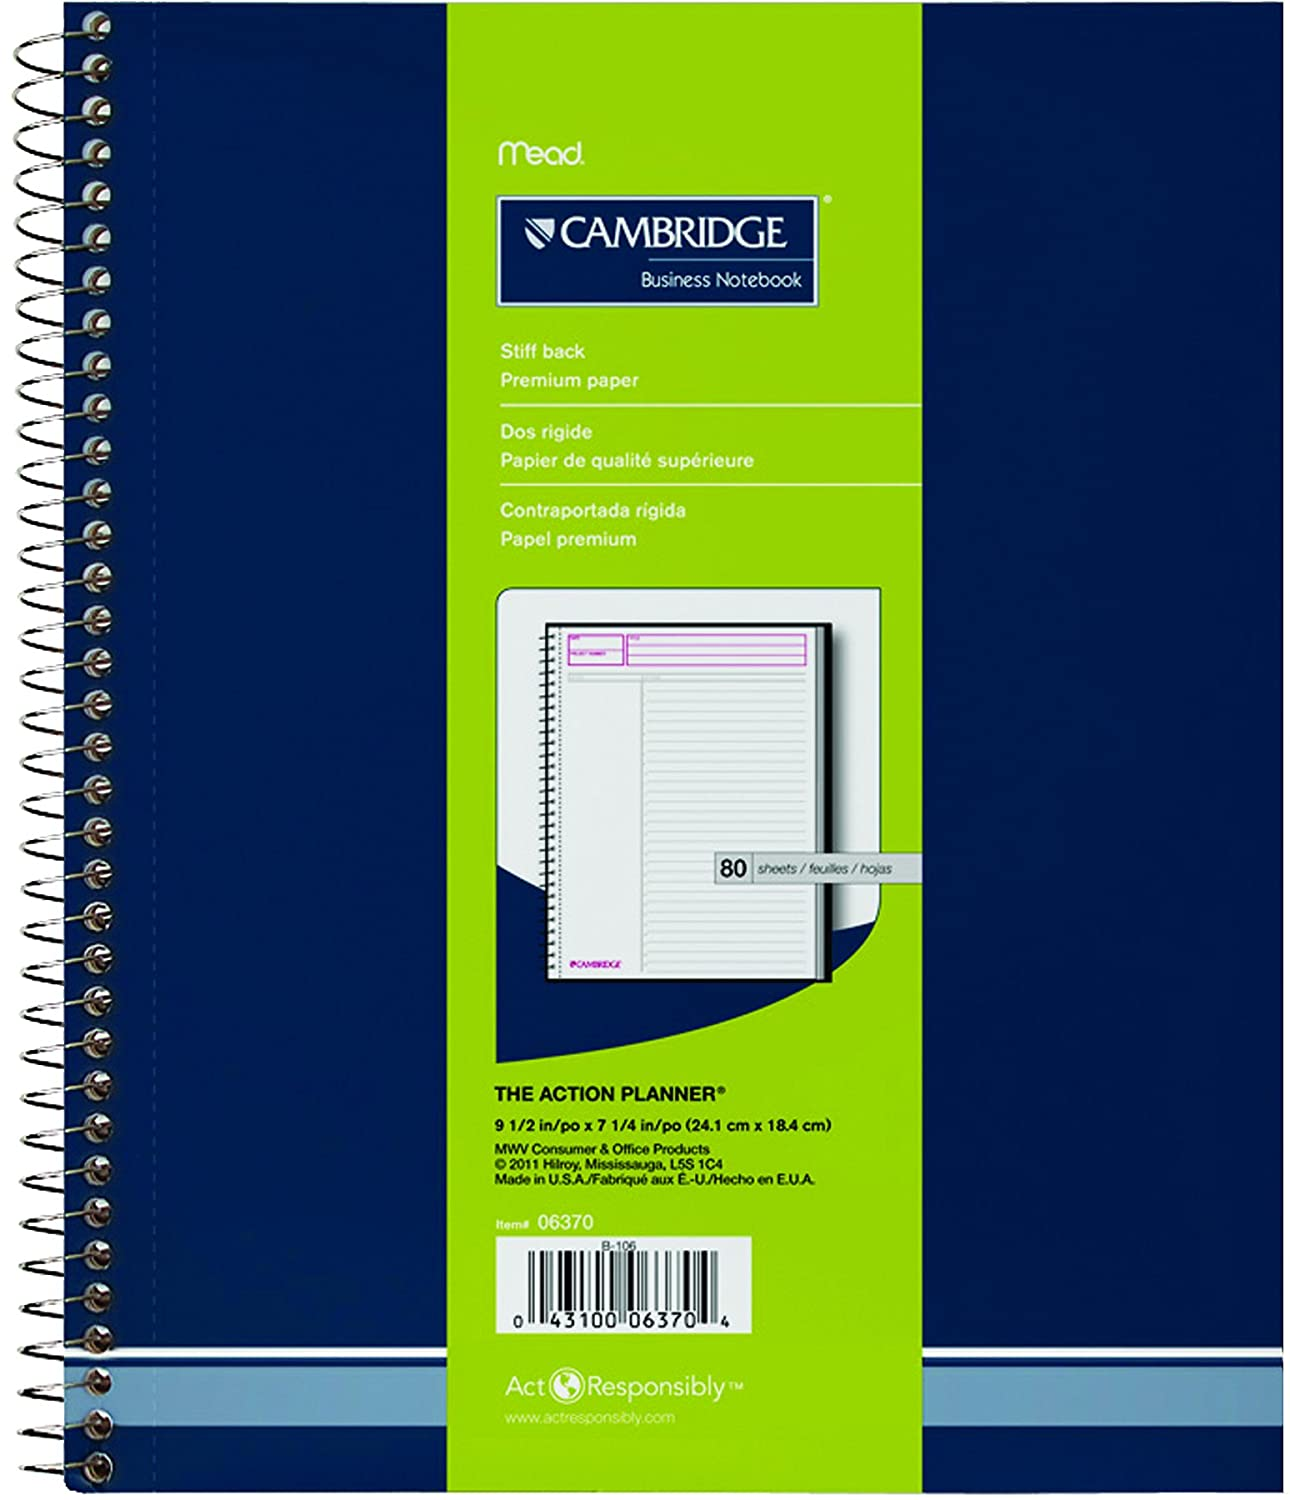 Cambridge Action Planner Wirebound Notebook, 9-1/2 X 7-1/4 Inches, 80 Sheets (06370)